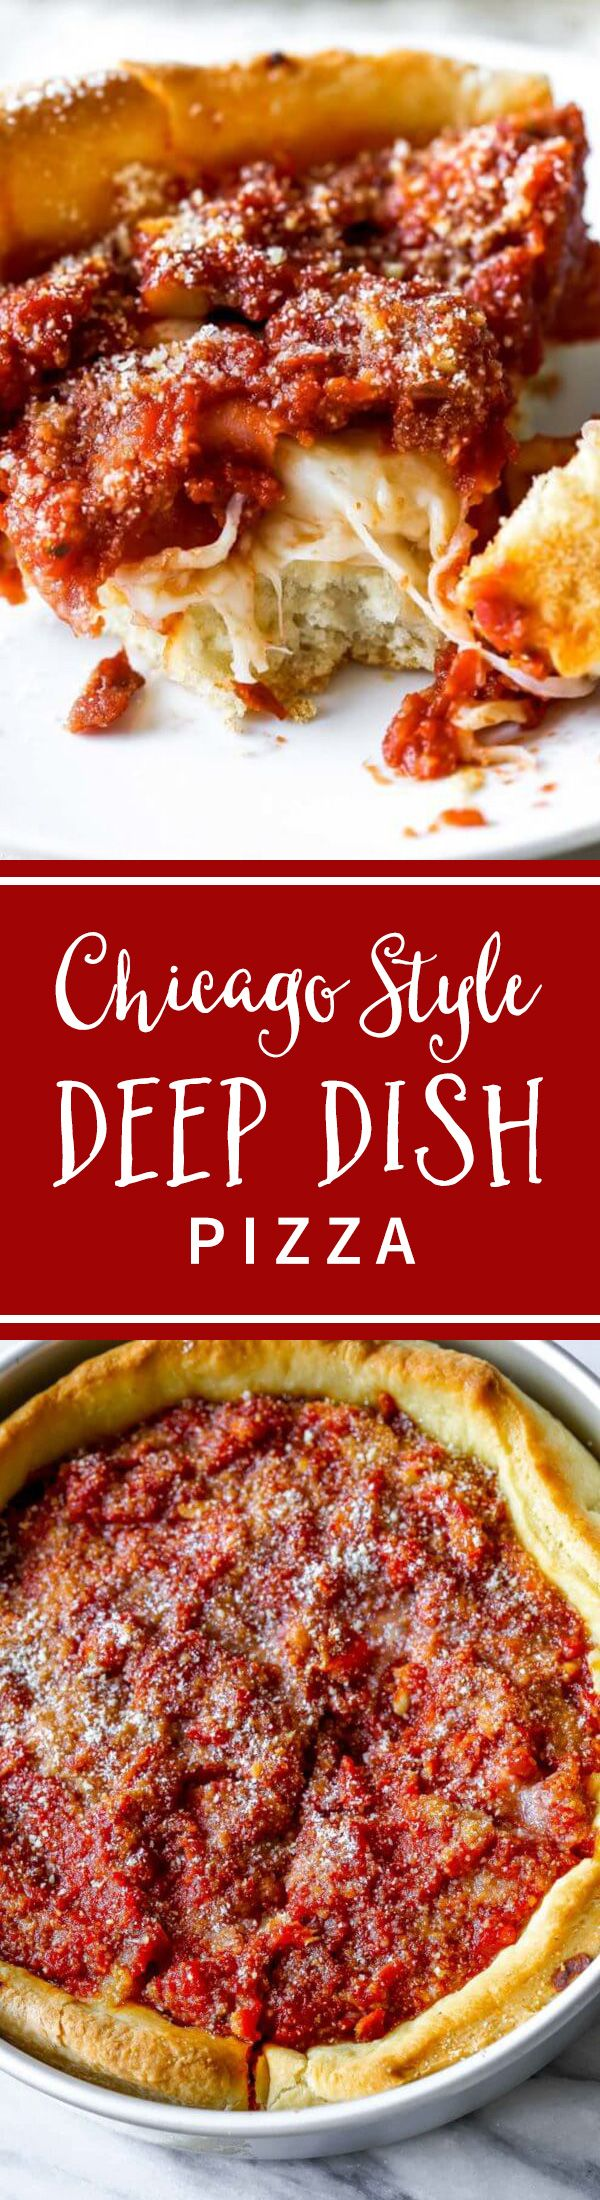 Here's how to make authentic-tasting Chicago deep dish pizza. Complete with the buttery crust, slightly sweet tomato sauce, and a thick layer of cheese. Recipe on sallysbakingaddiction.com (Pizza Recipes)